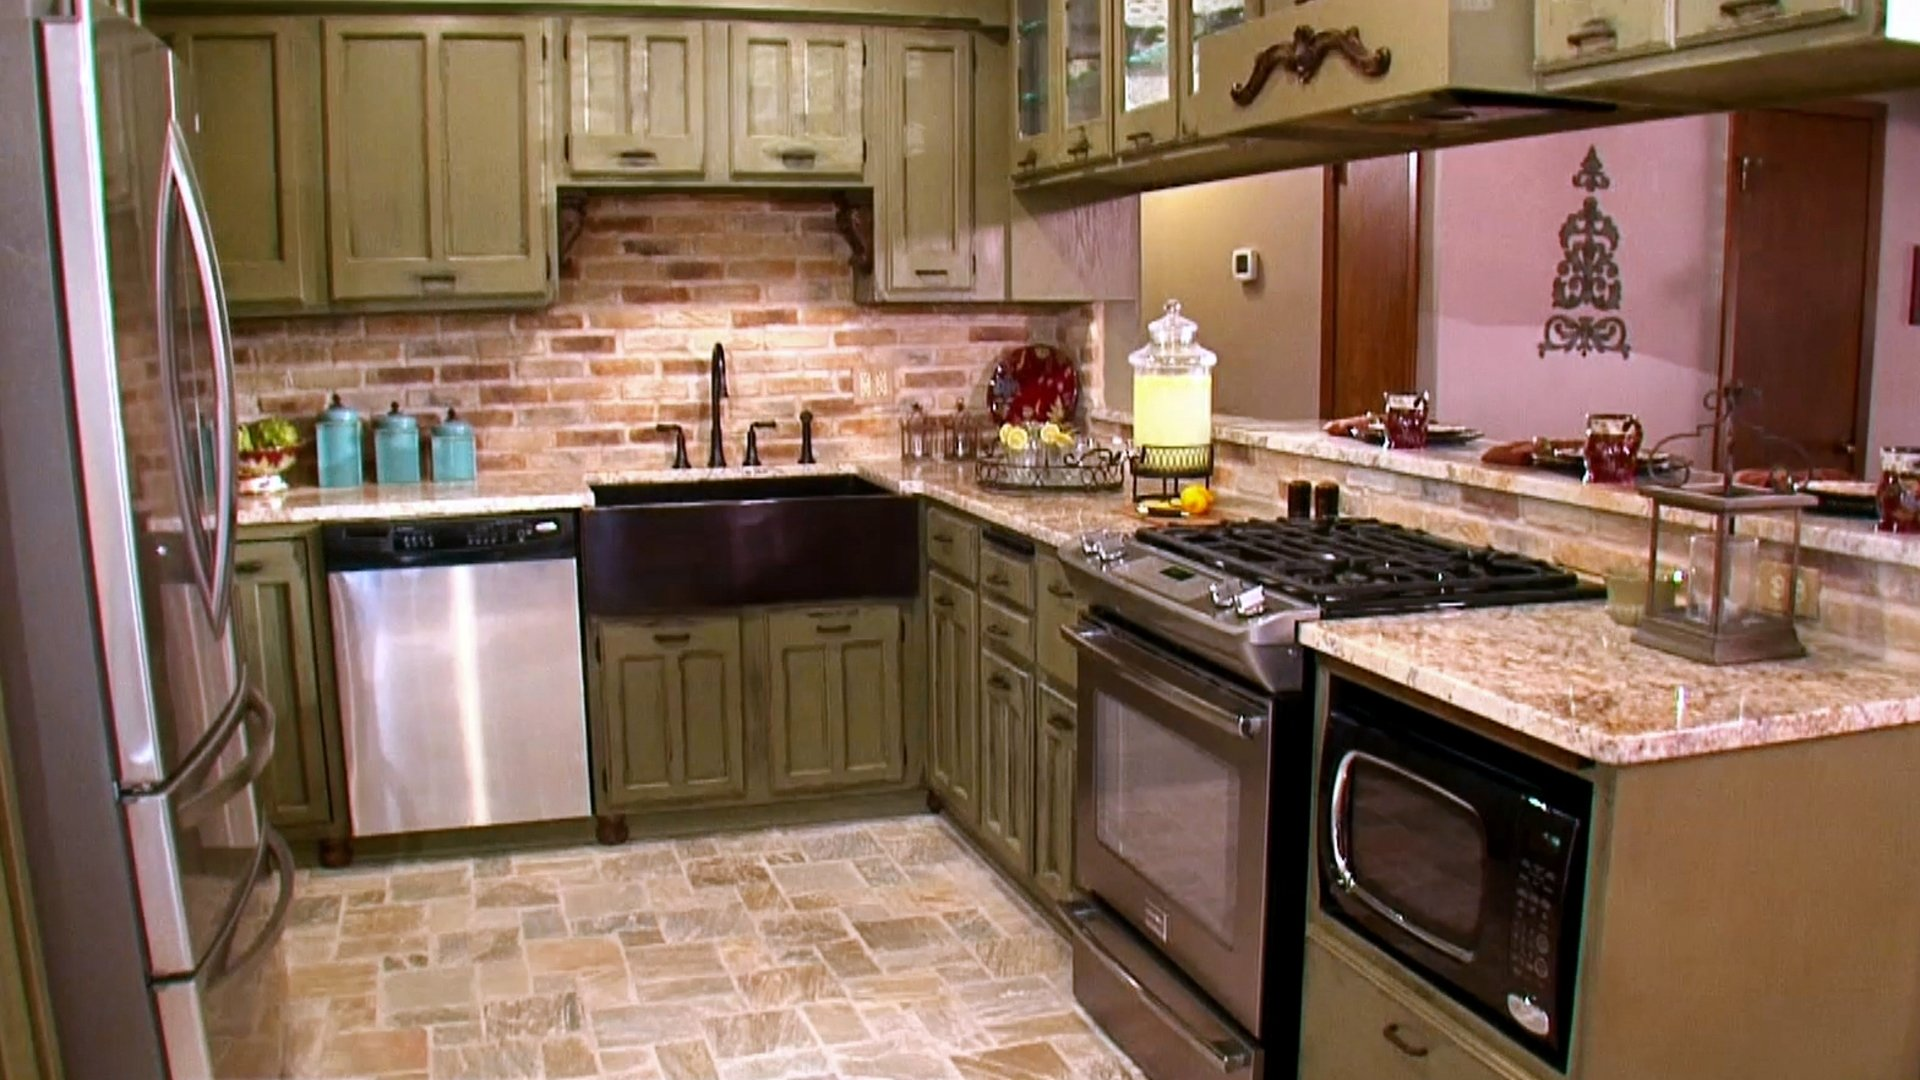 10 Fashionable French Country Kitchen Decorating Ideas french country kitchens and more hgtv 2020